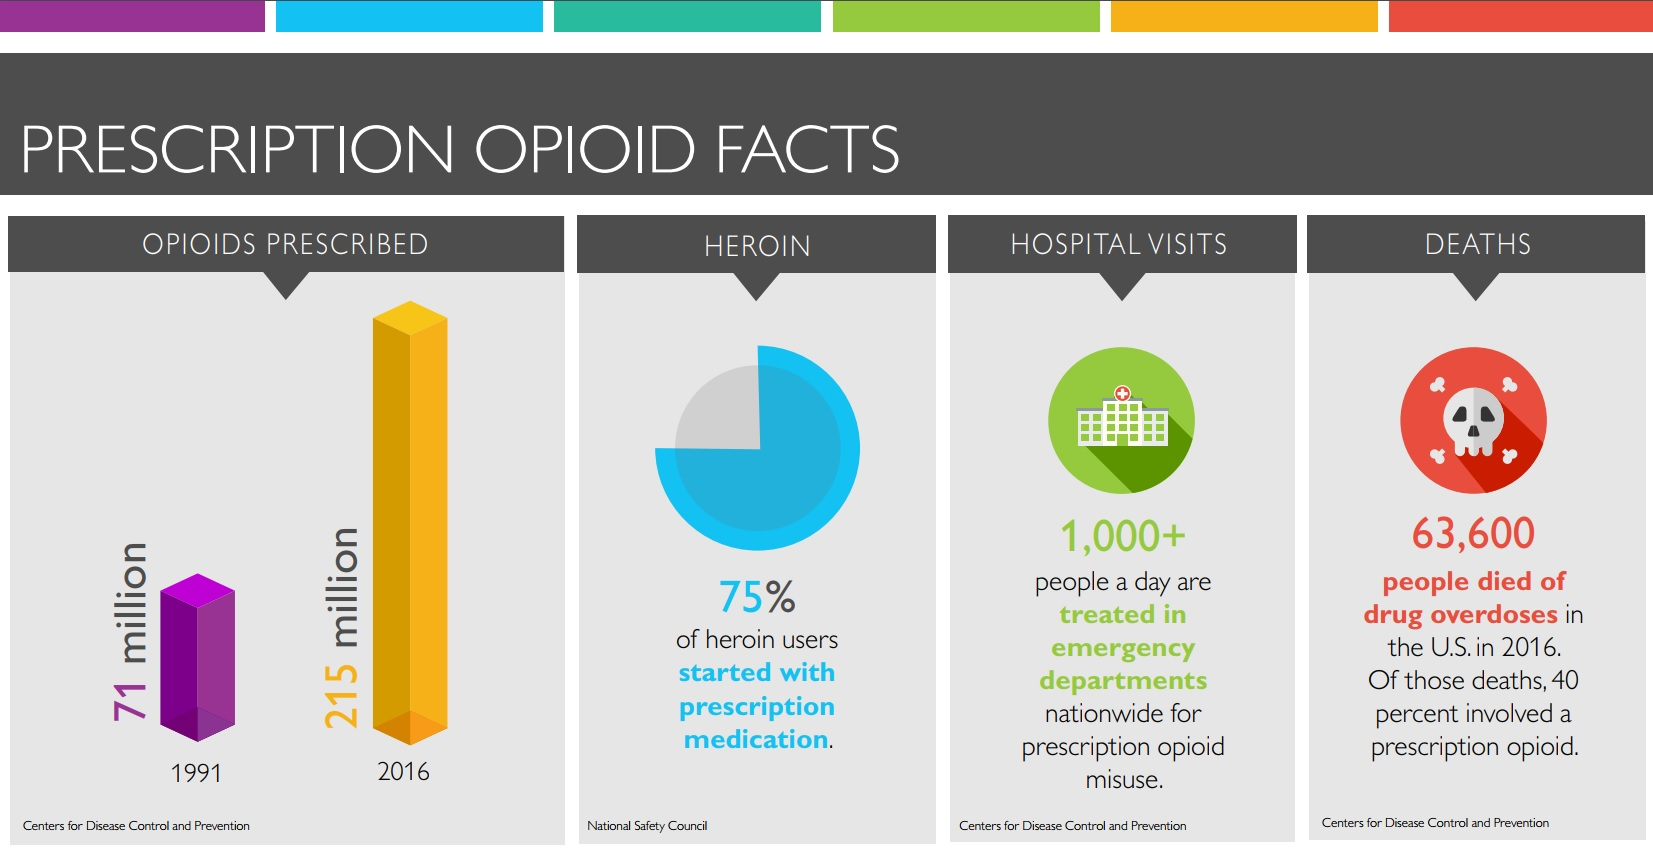 Infographic includes charts that illustrate the increase in opioids prescribed between 1991 (7 million) and 2013 (207 million); the percentage of patients who transition from prescription medication to heroin use (75 percent); the number of people treated in hospital emergency departments nationally every day for not using prescription opioids as intended (1,000-plus); and the number of people who have died from opioid overdoses in the U.S. (165,000). Statistics provided by the National Institute on Drug Abuse